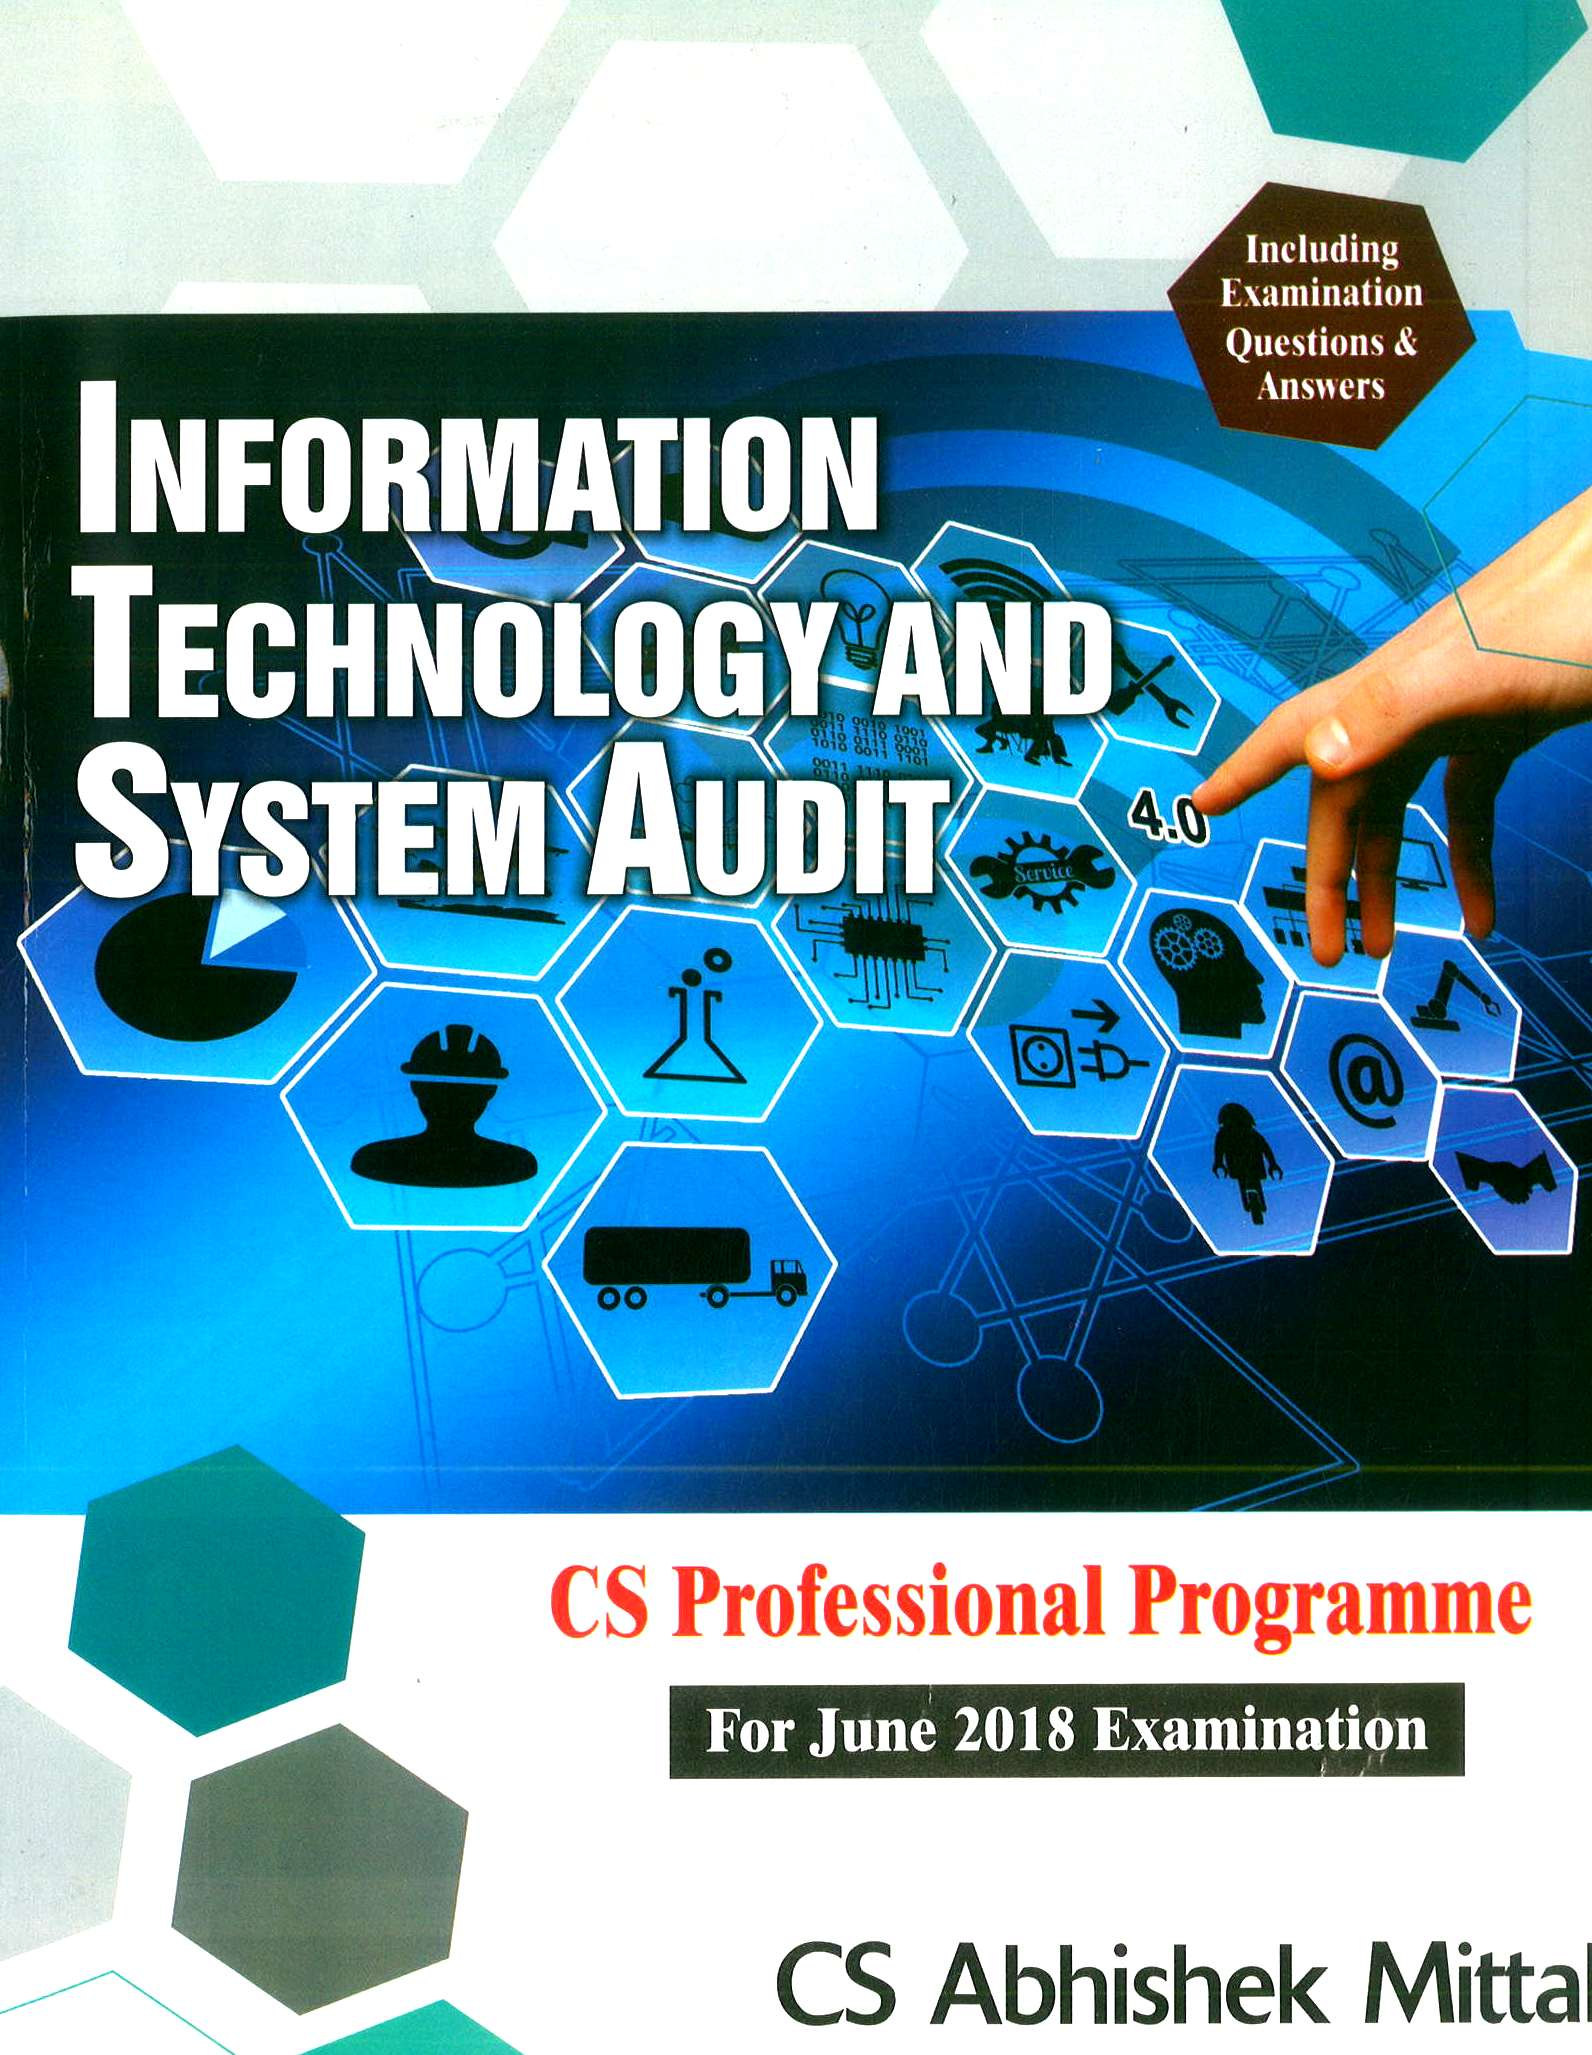 Sangeet kedia CS Professional Programme Information Technology And Systems Audit By Abhishek Mittal Applicable for June 2018 Exam